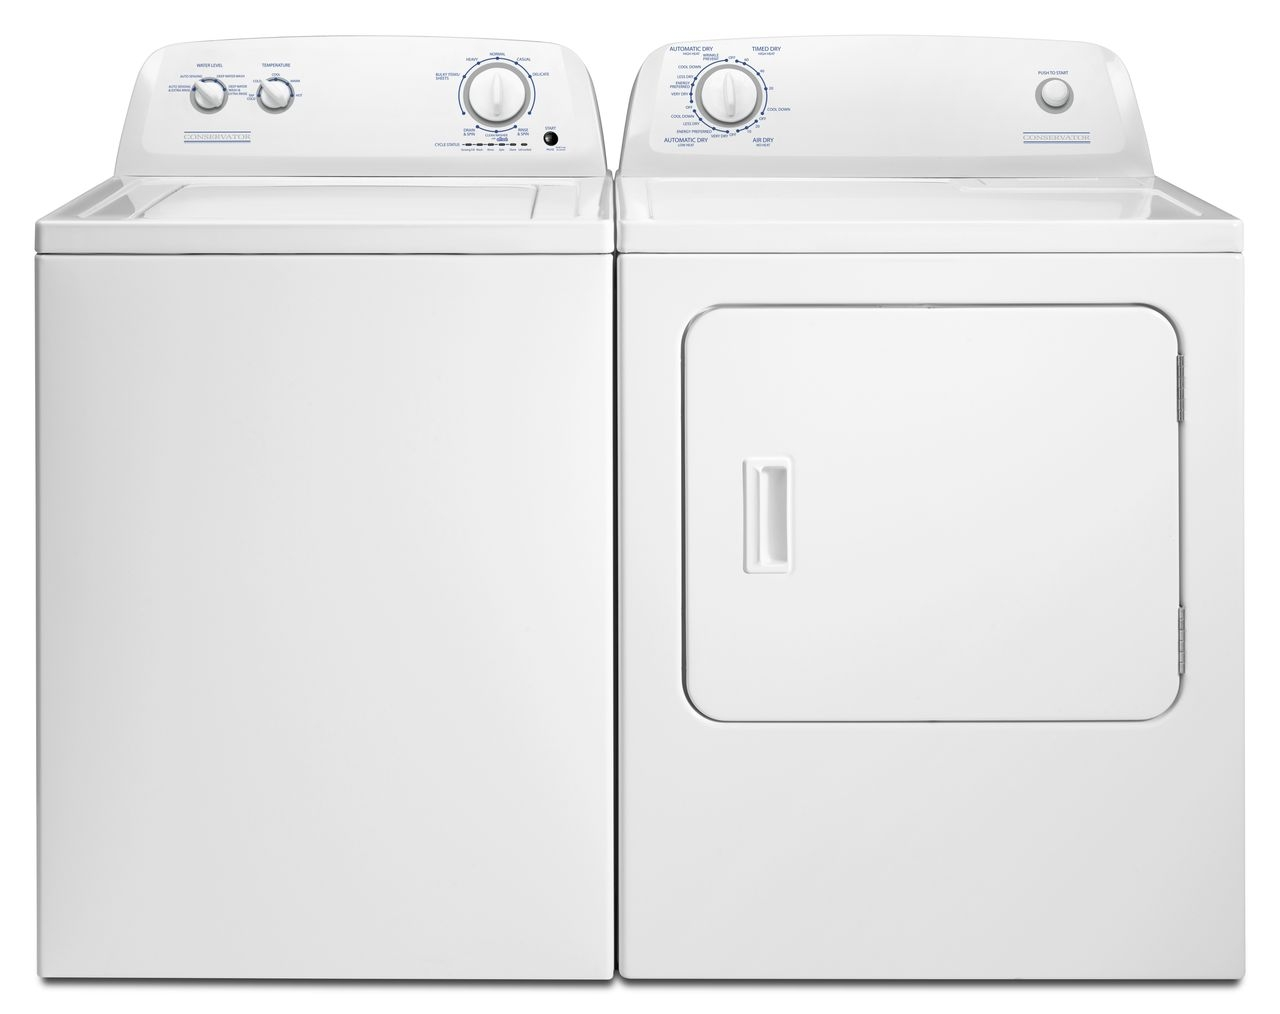 Conservator By Crosley Top Load Laundry Pair White Vaw3584gw Ved6505gw